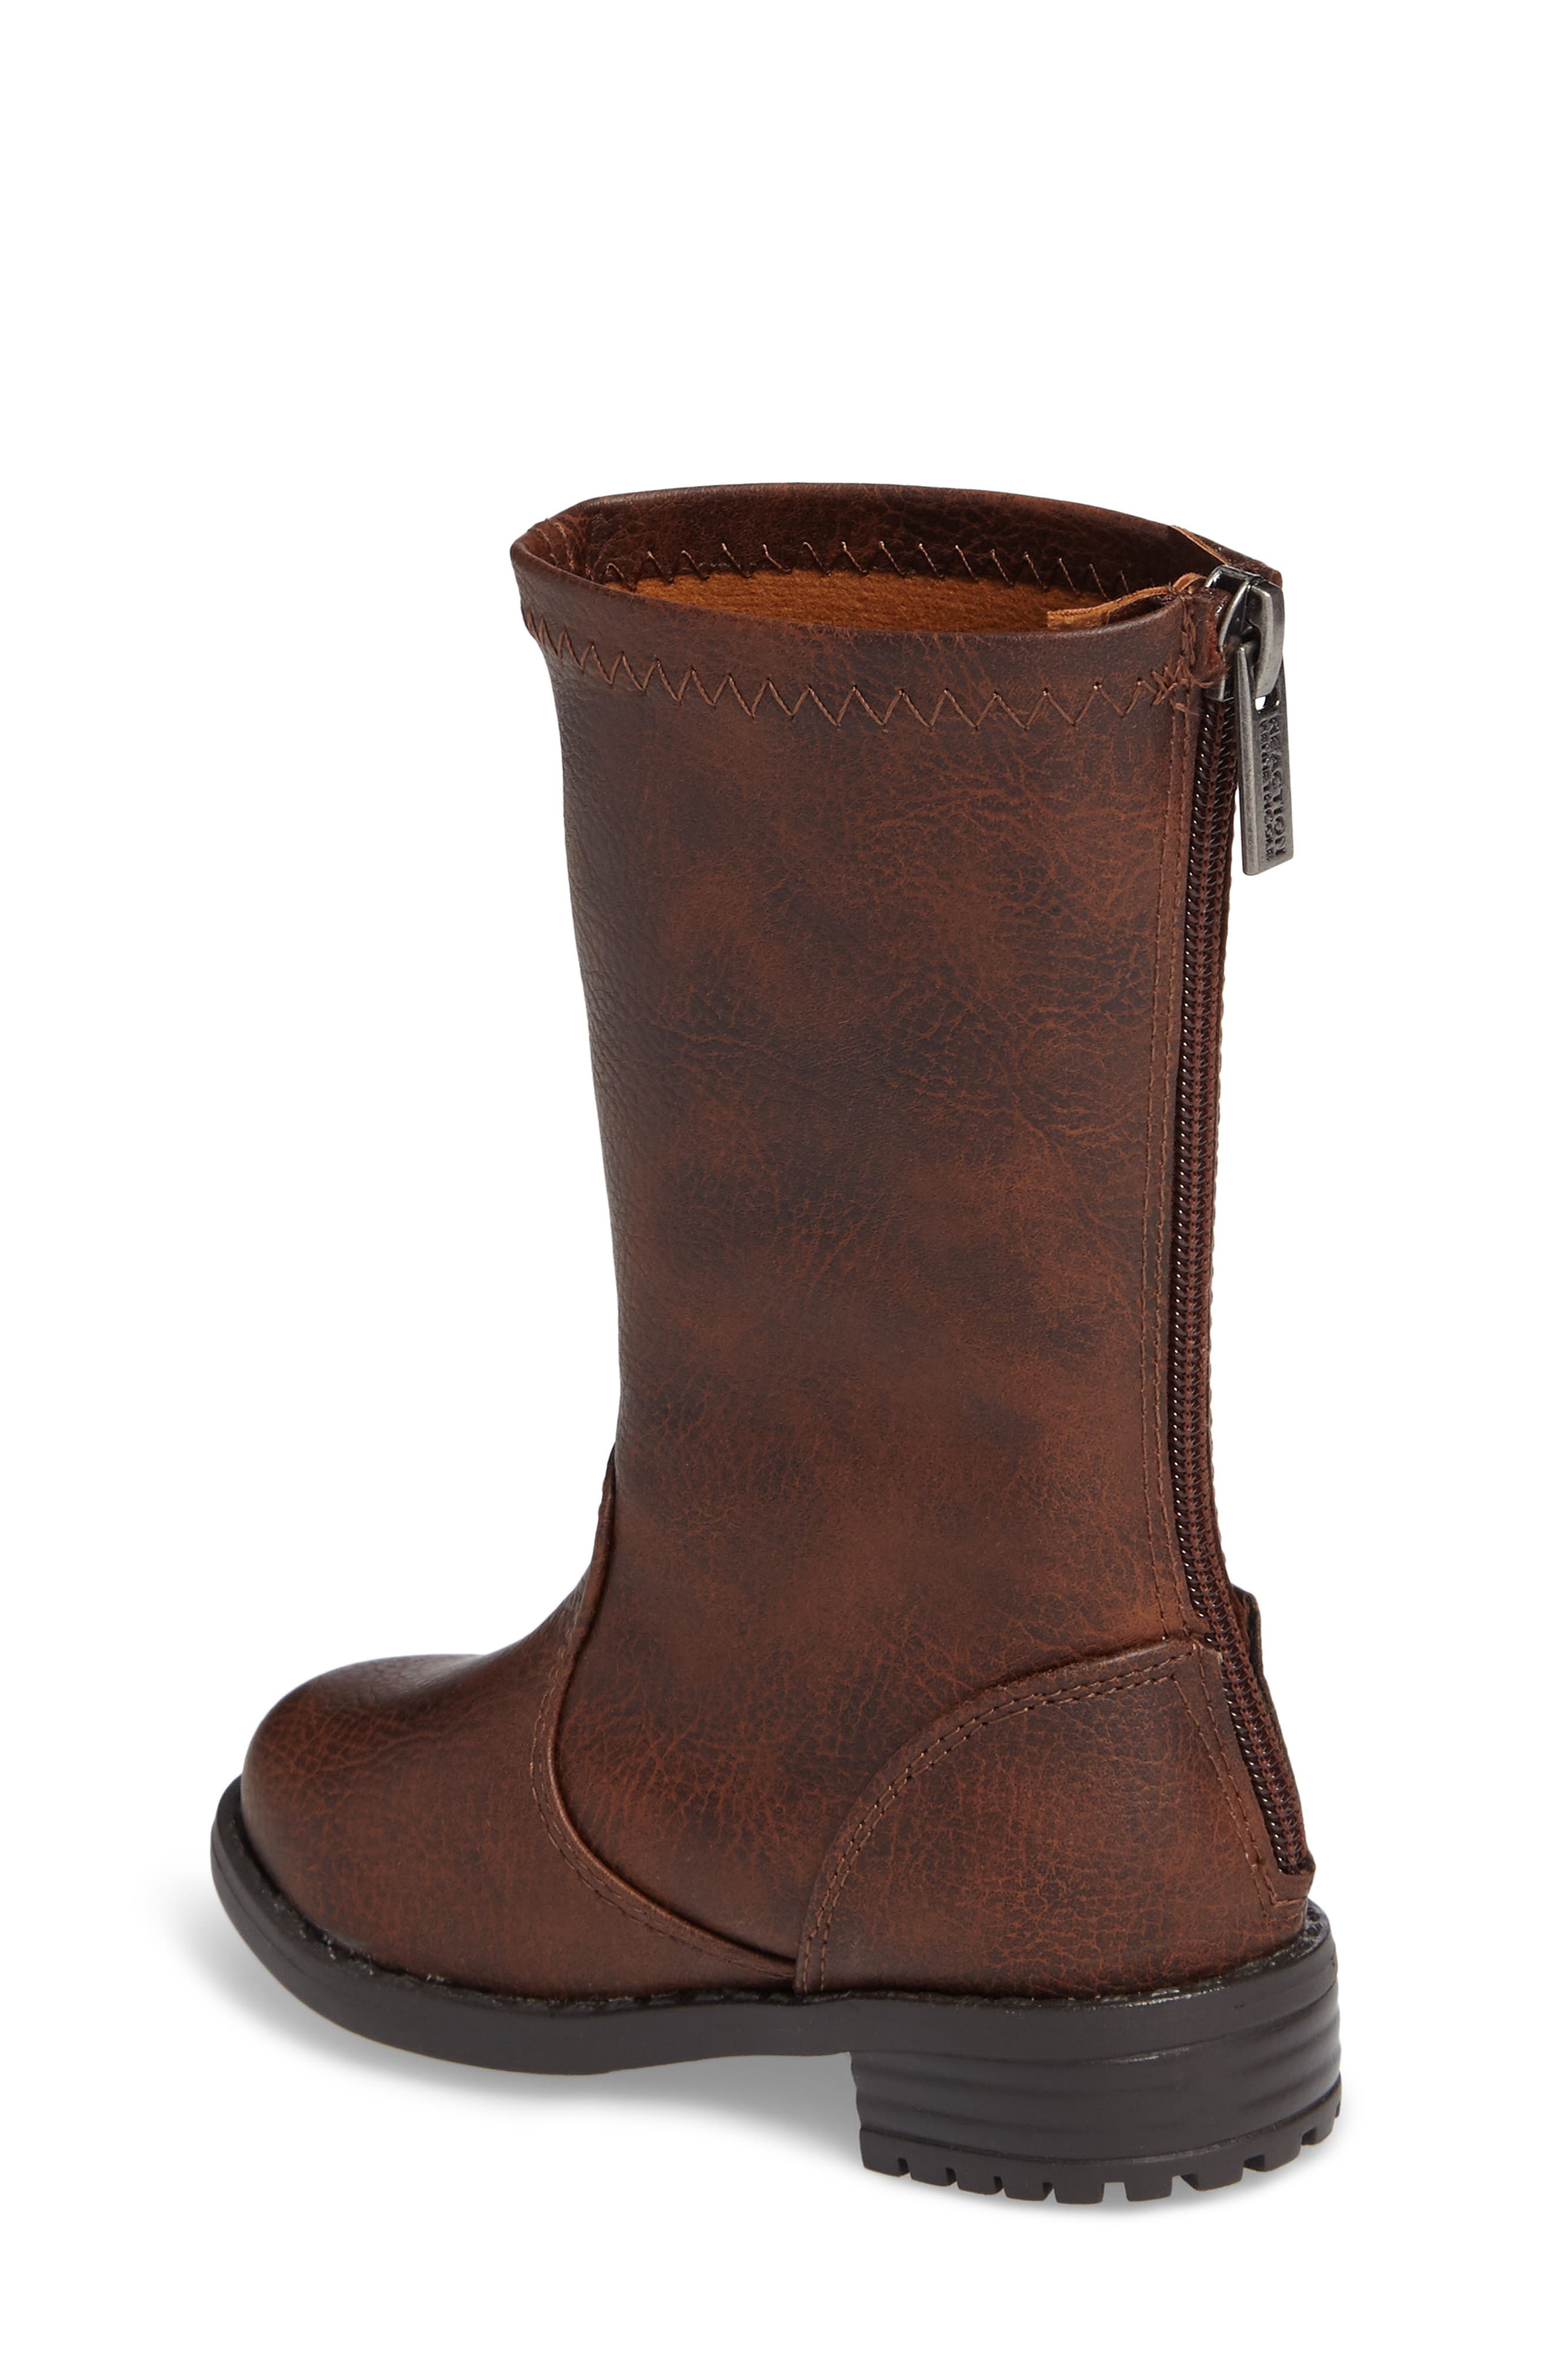 Autumn Stretch Boot,                             Alternate thumbnail 2, color,                             Distressed Brown Faux Leather